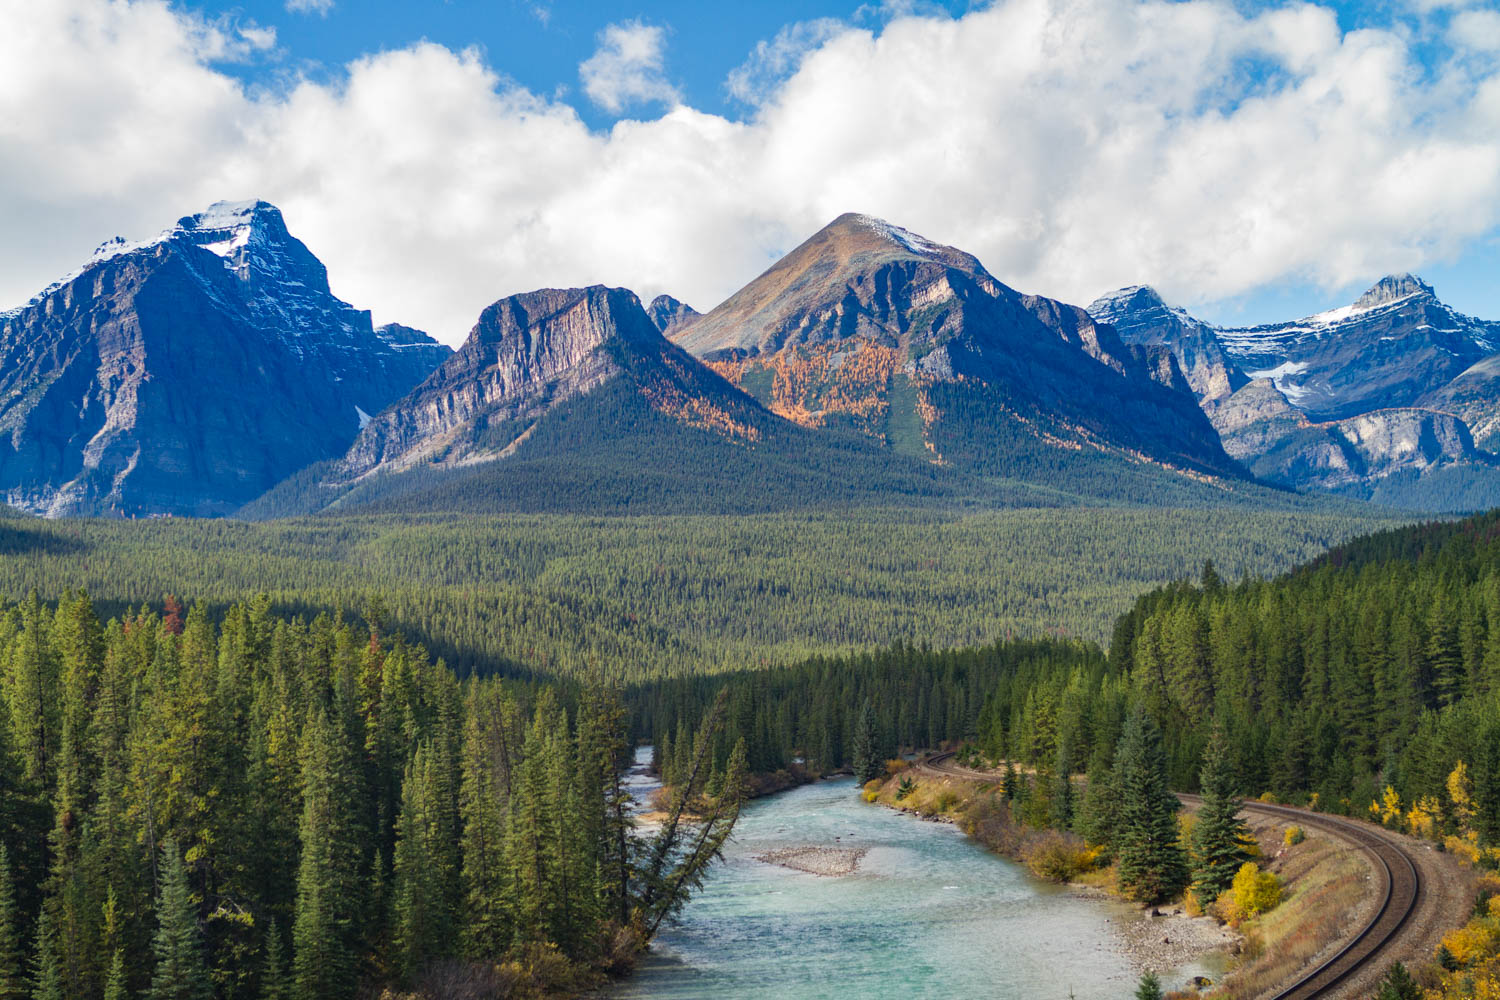 Mountains along the Icefield Parkway.